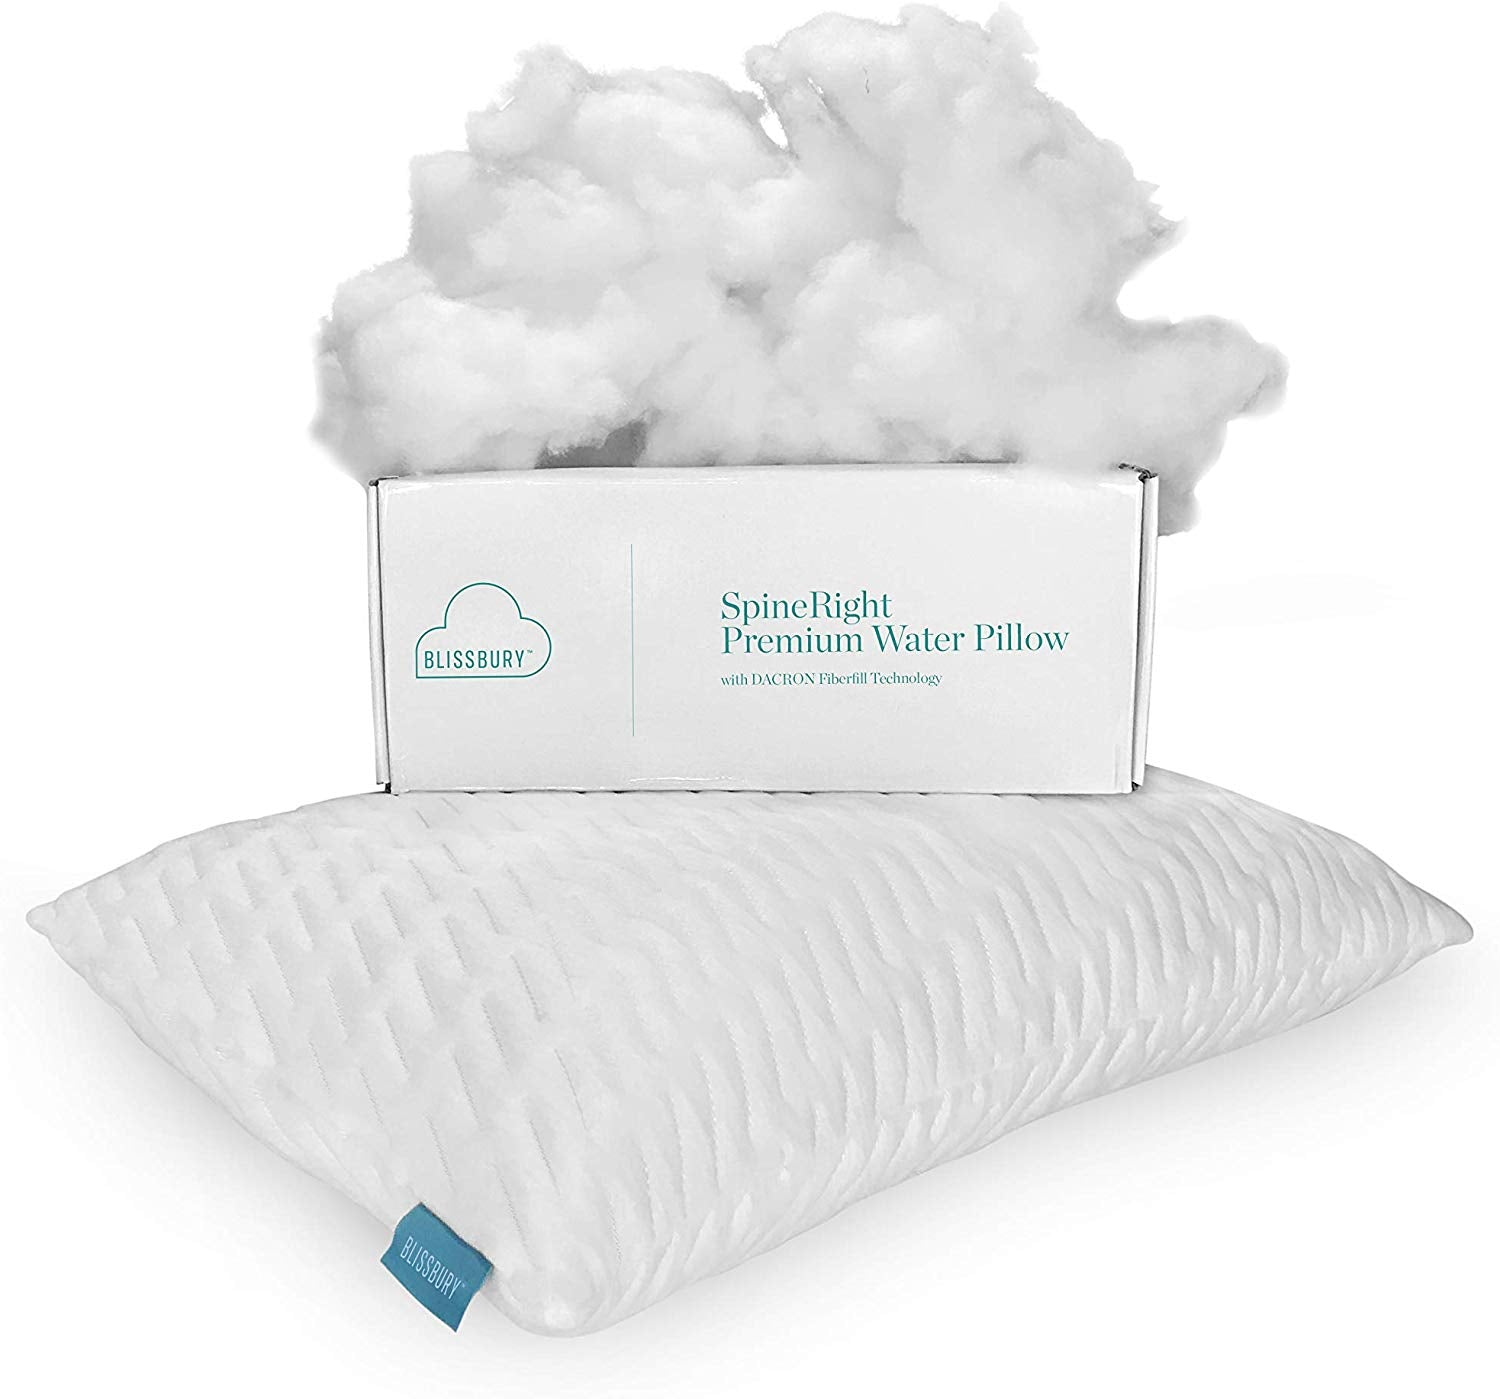 SpineRight Premium Water Pillow